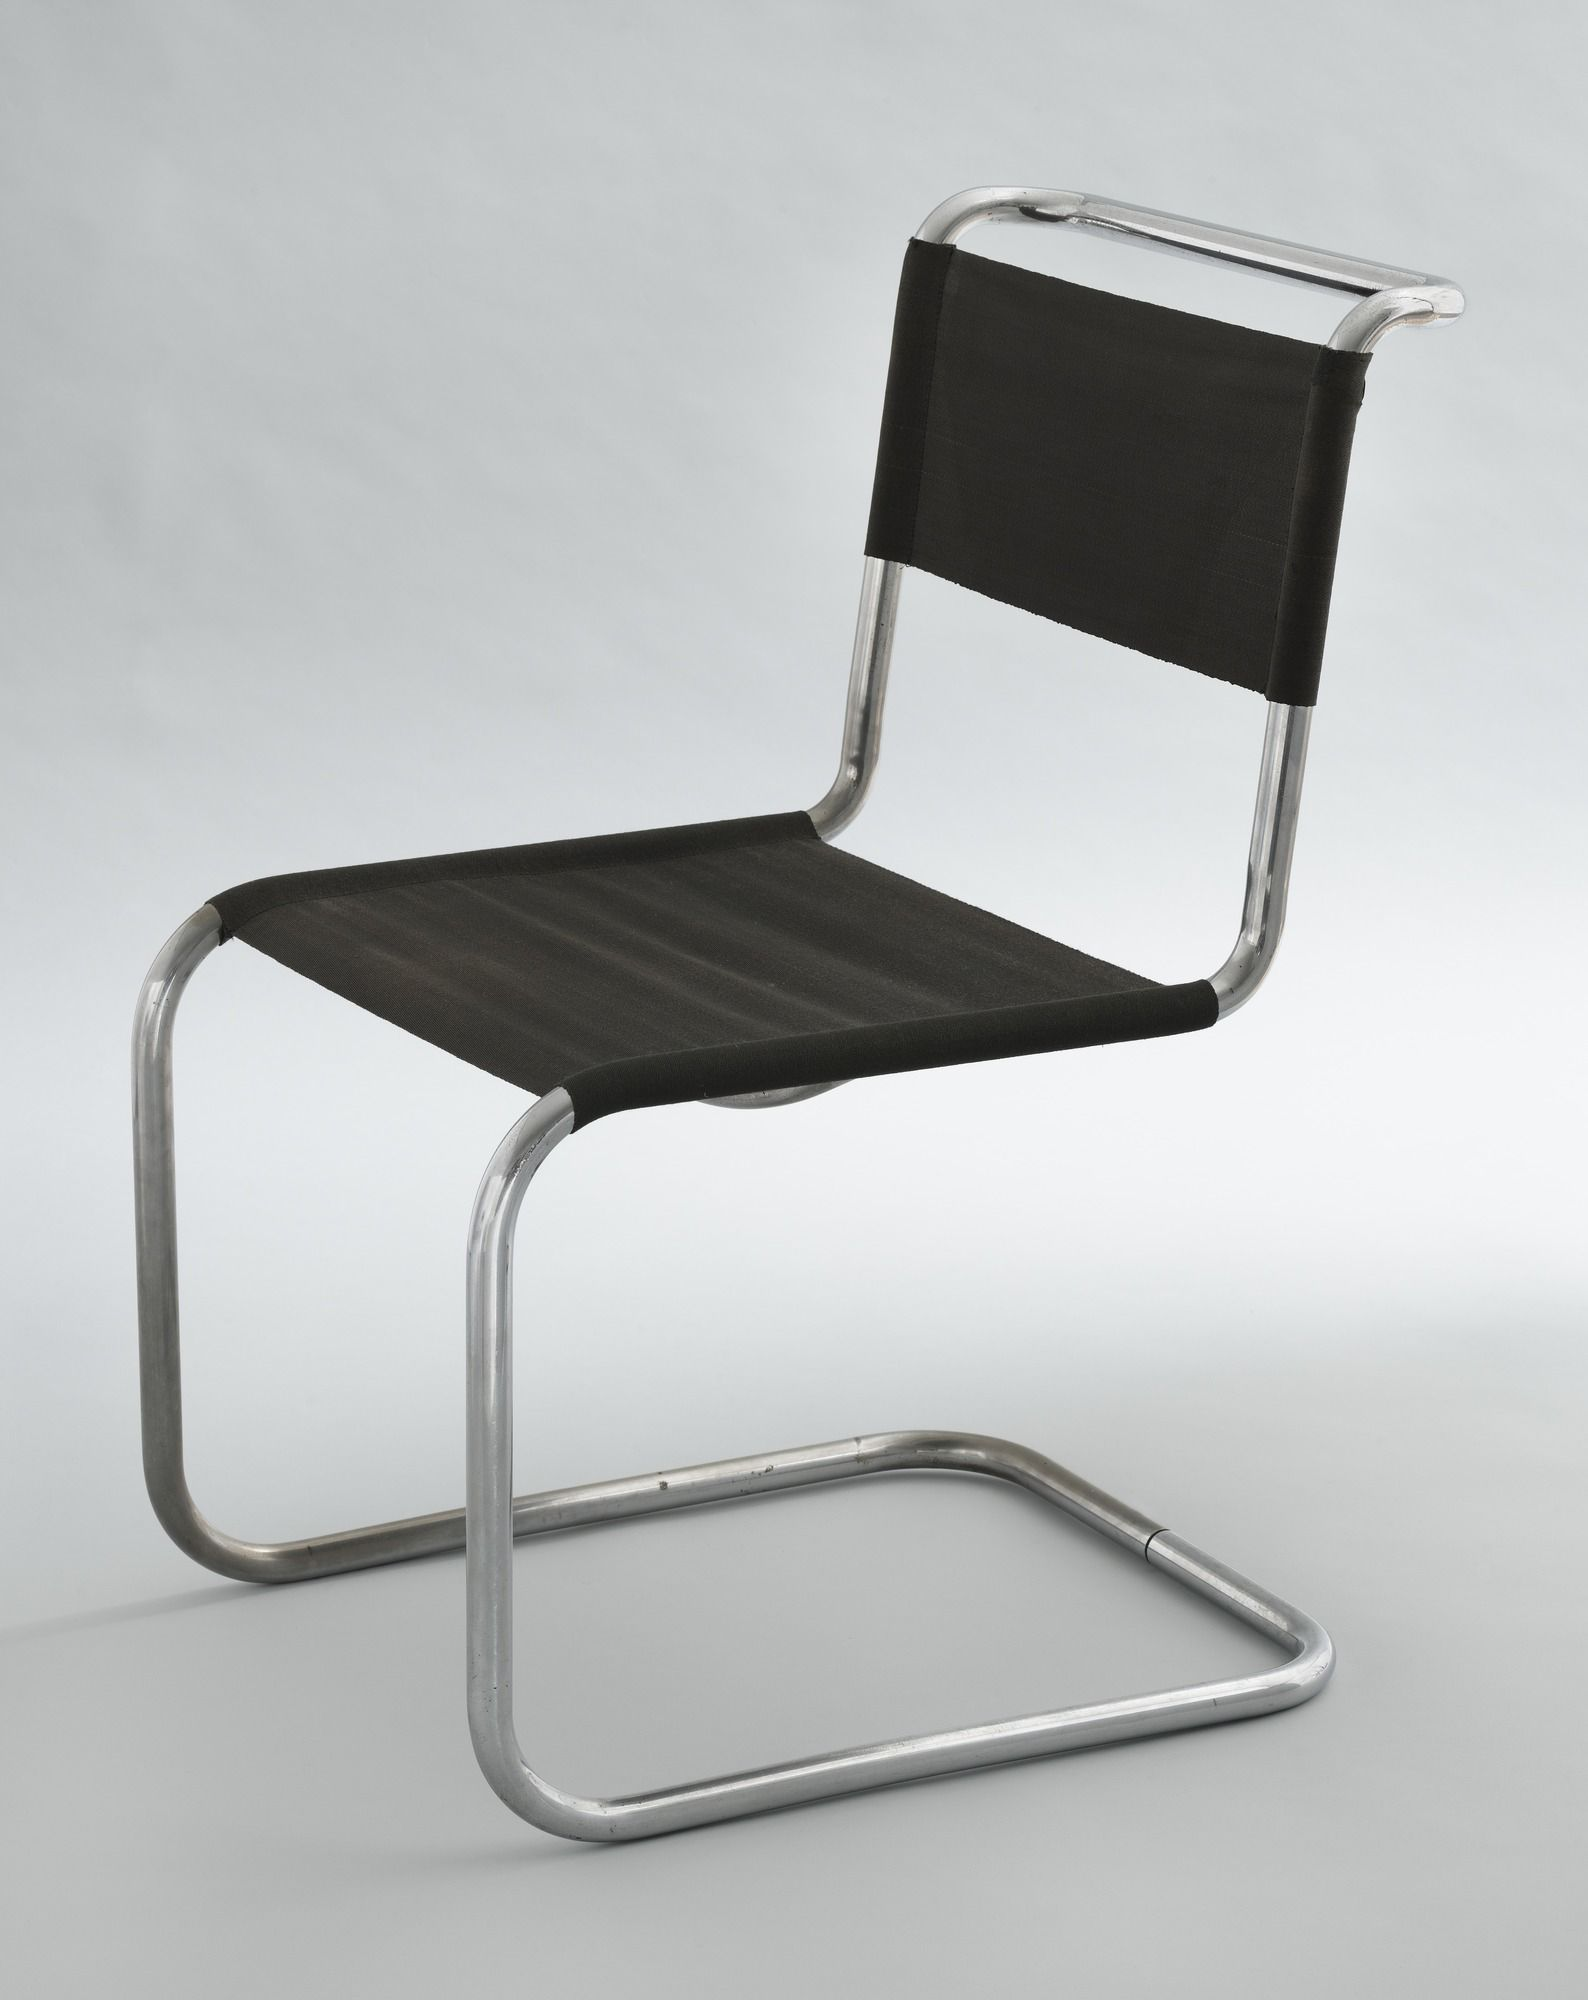 chair model b33 marcel breuer 1927 28 chrome plated. Black Bedroom Furniture Sets. Home Design Ideas